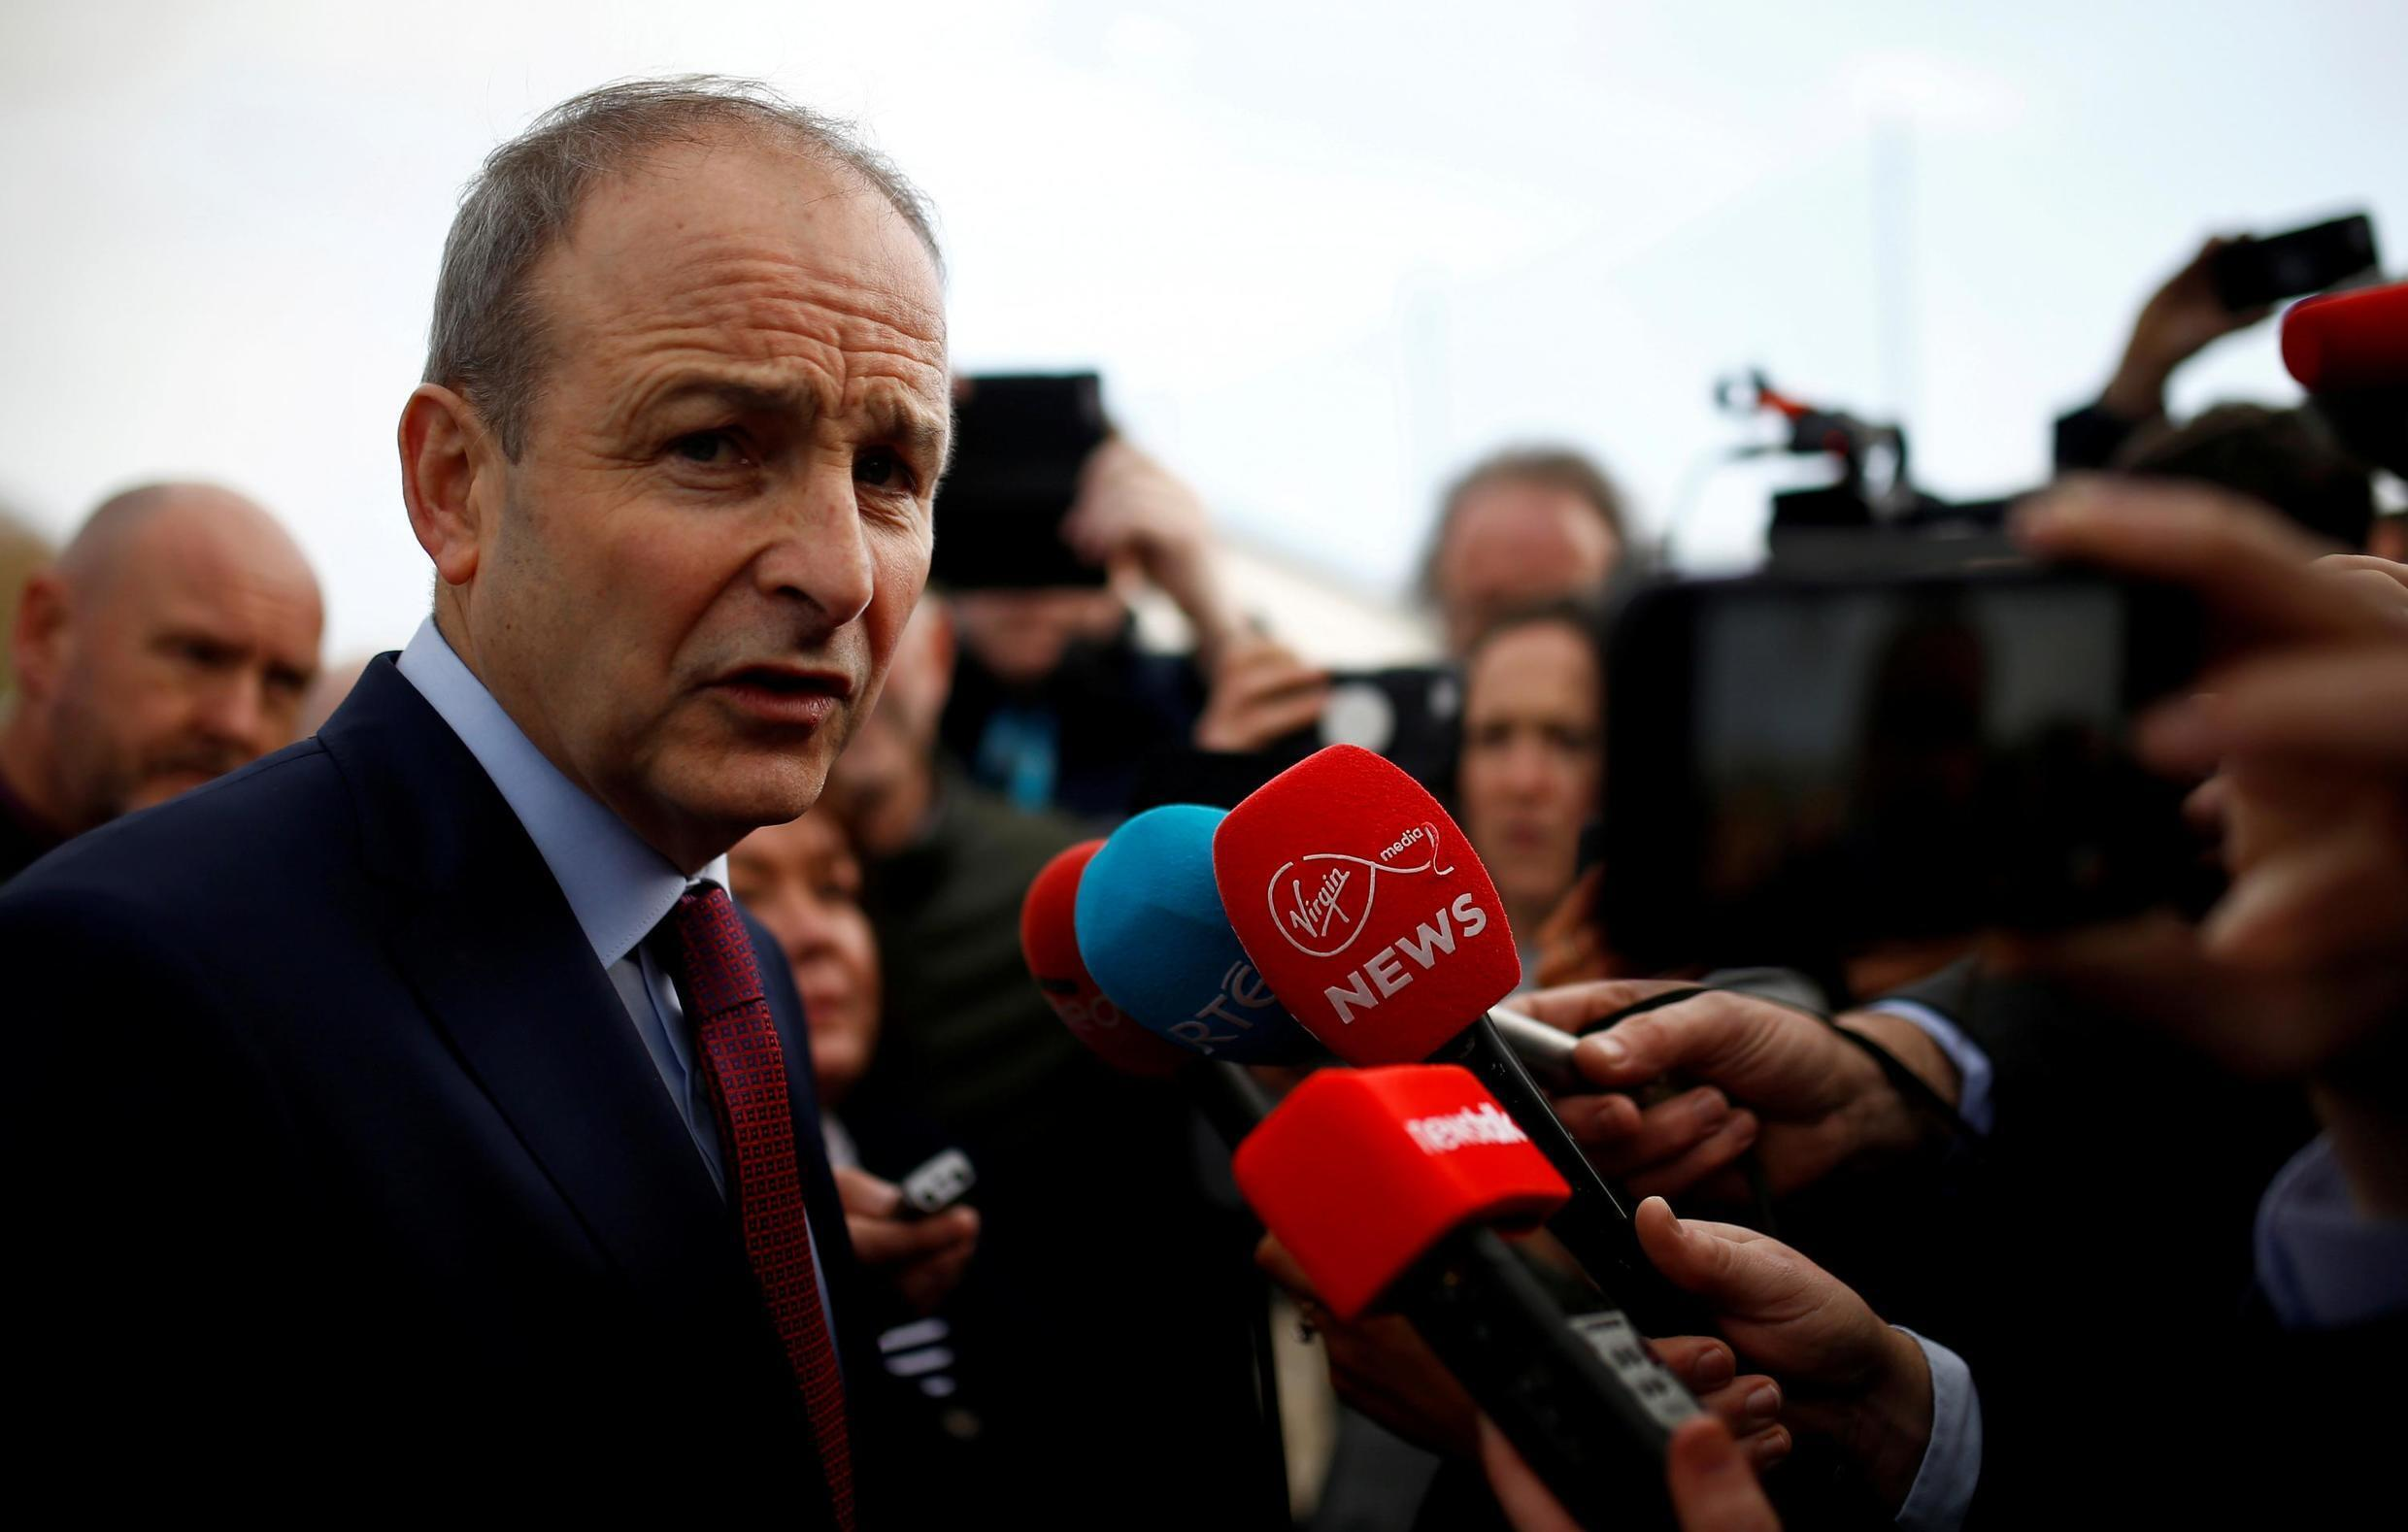 Ireland's prime minister Michael Martin said schools would remain open during six weeks of tougher measures to stop the spread of the coronavirus pandemic.